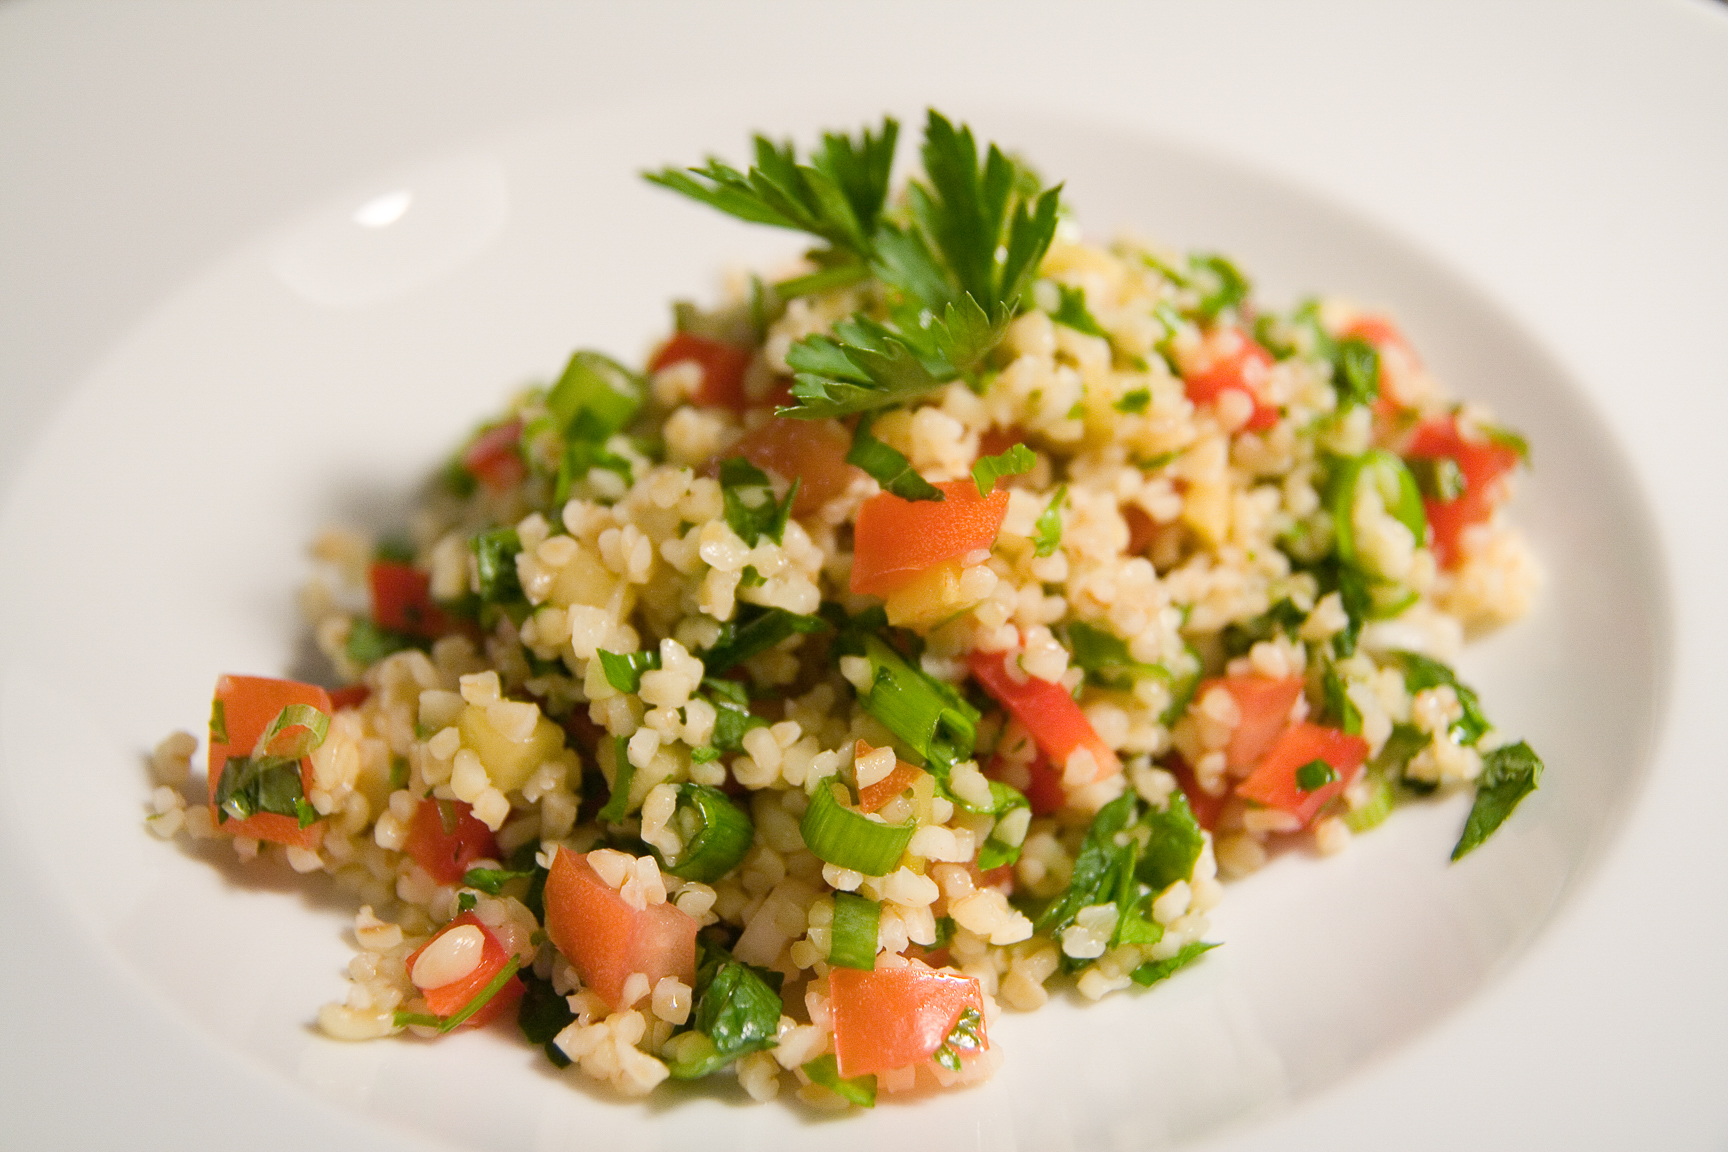 Tabbouleh, a Levantine salad made with a base of soaked bulgur wheat. (Photo: Moritz Guth)